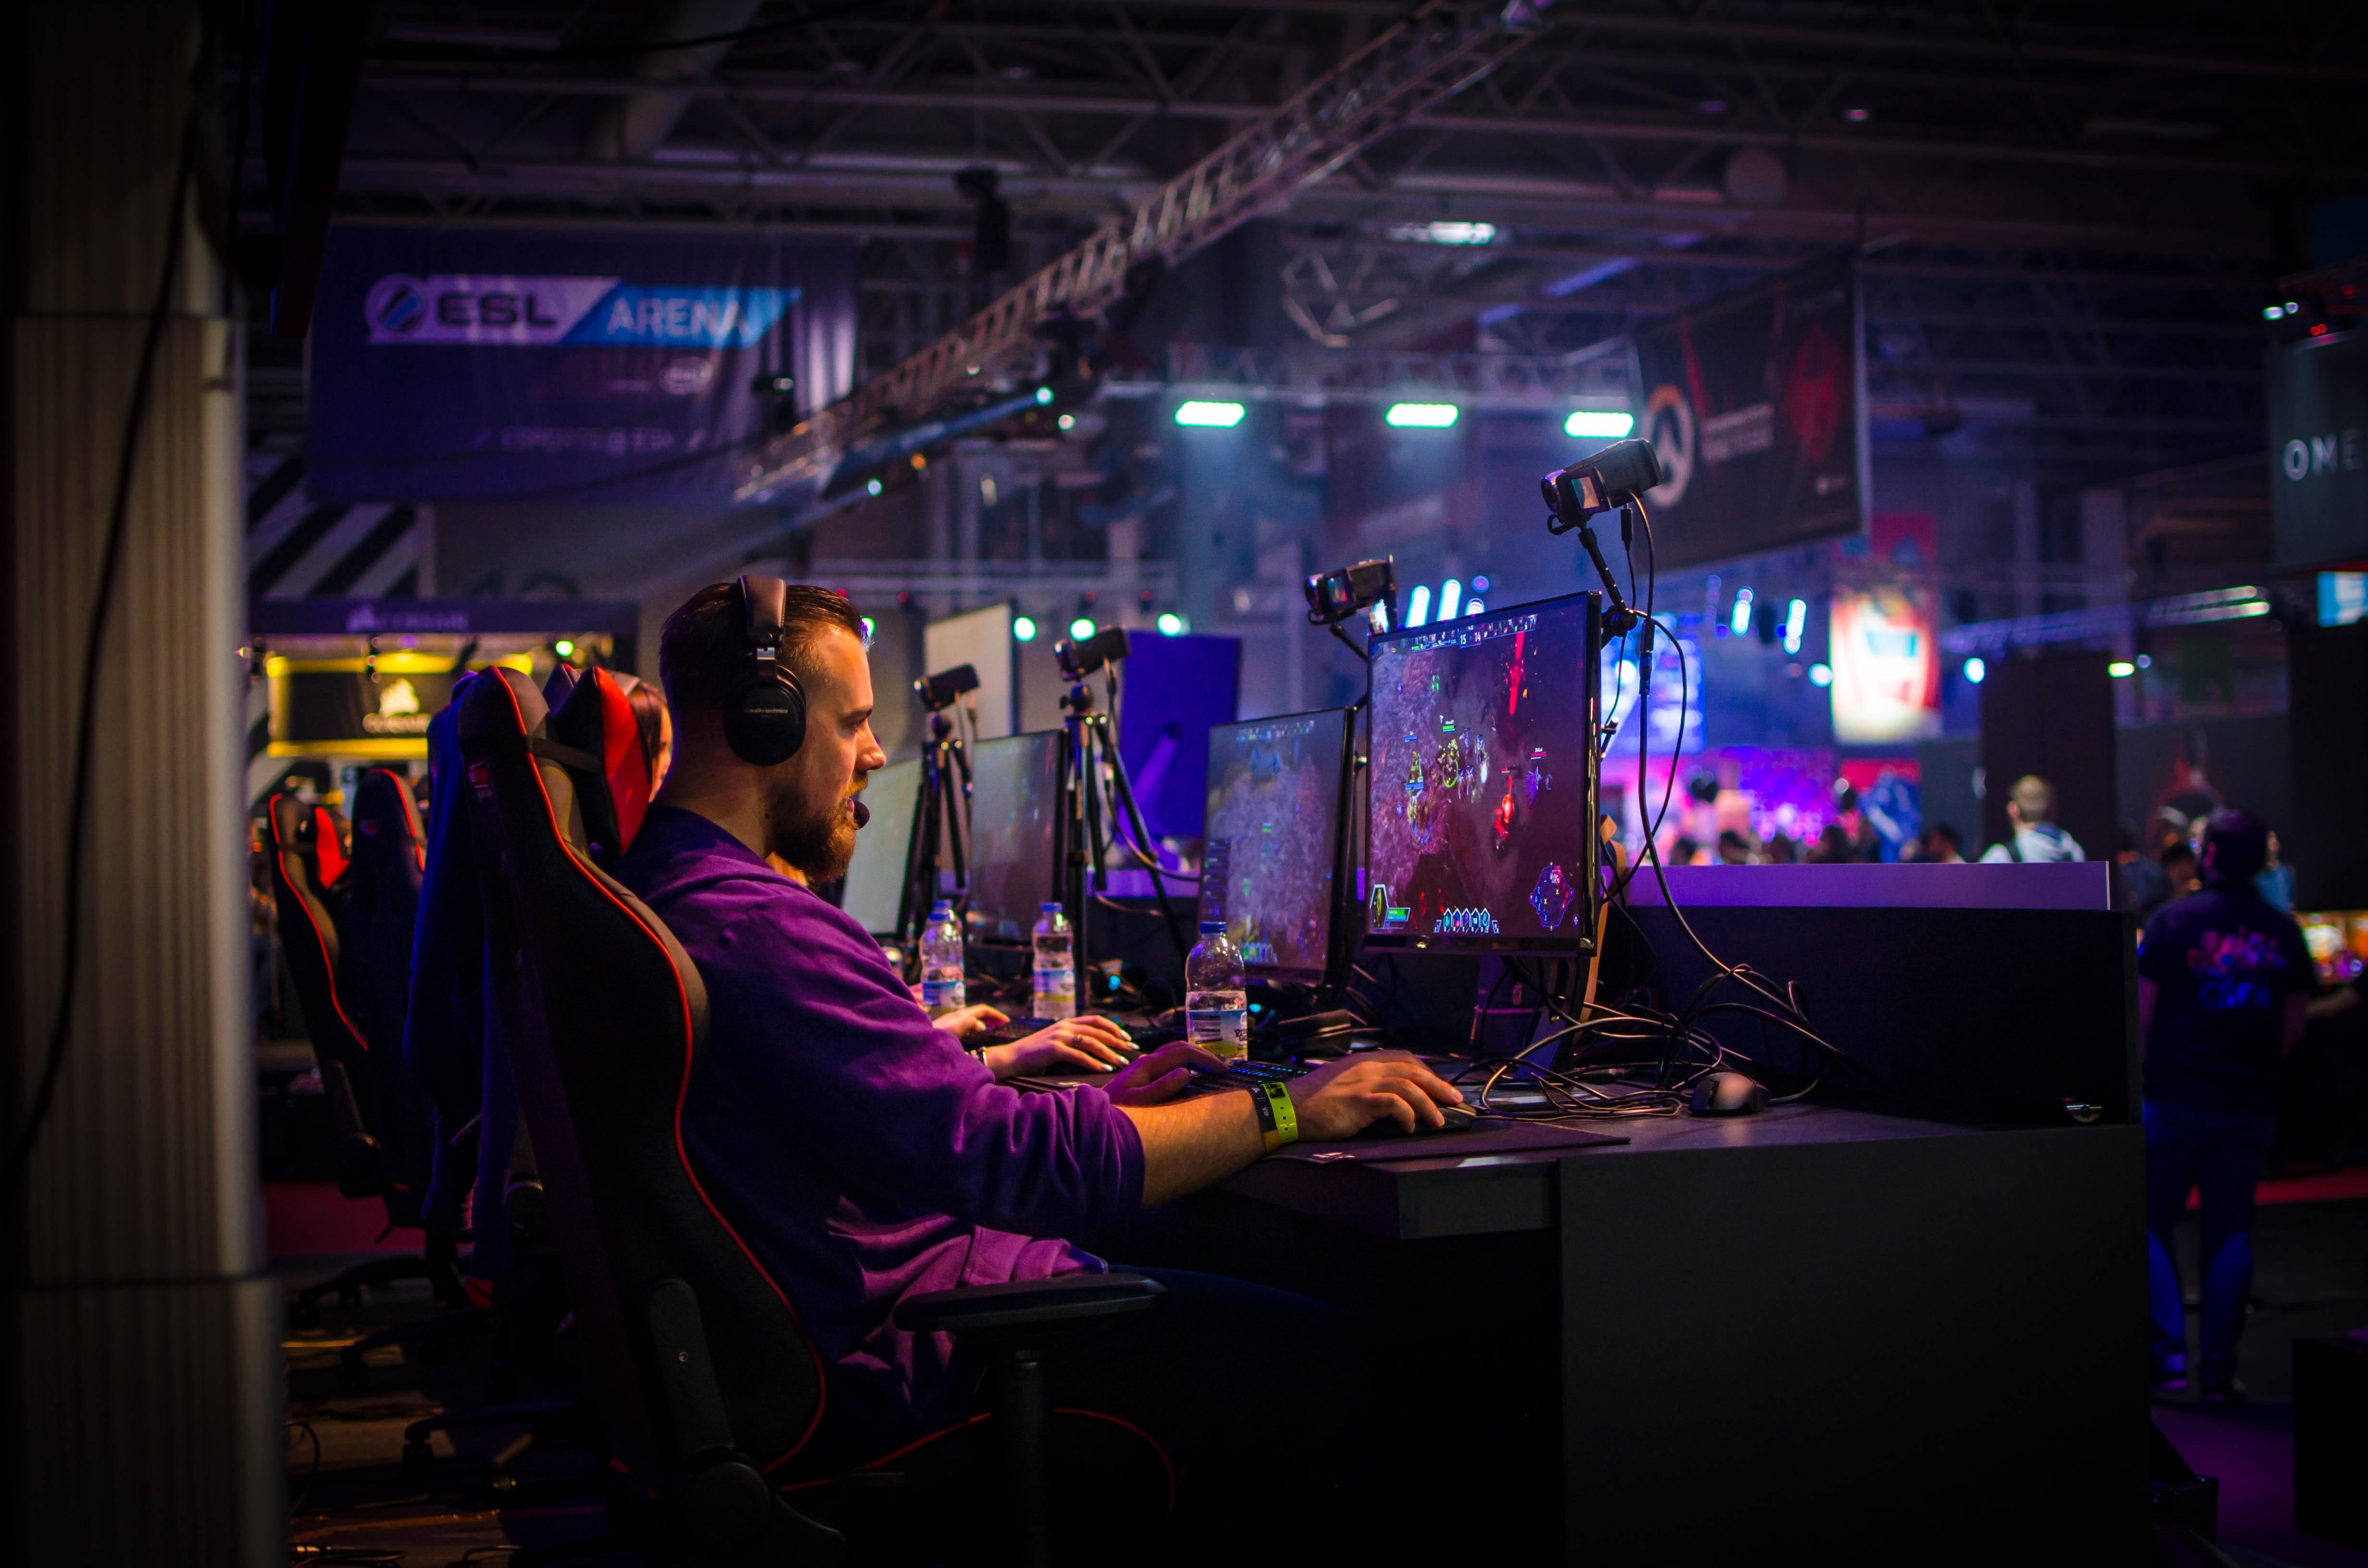 Gaming CMS Checklist: How To Find The Best CMS For A Gaming Website image